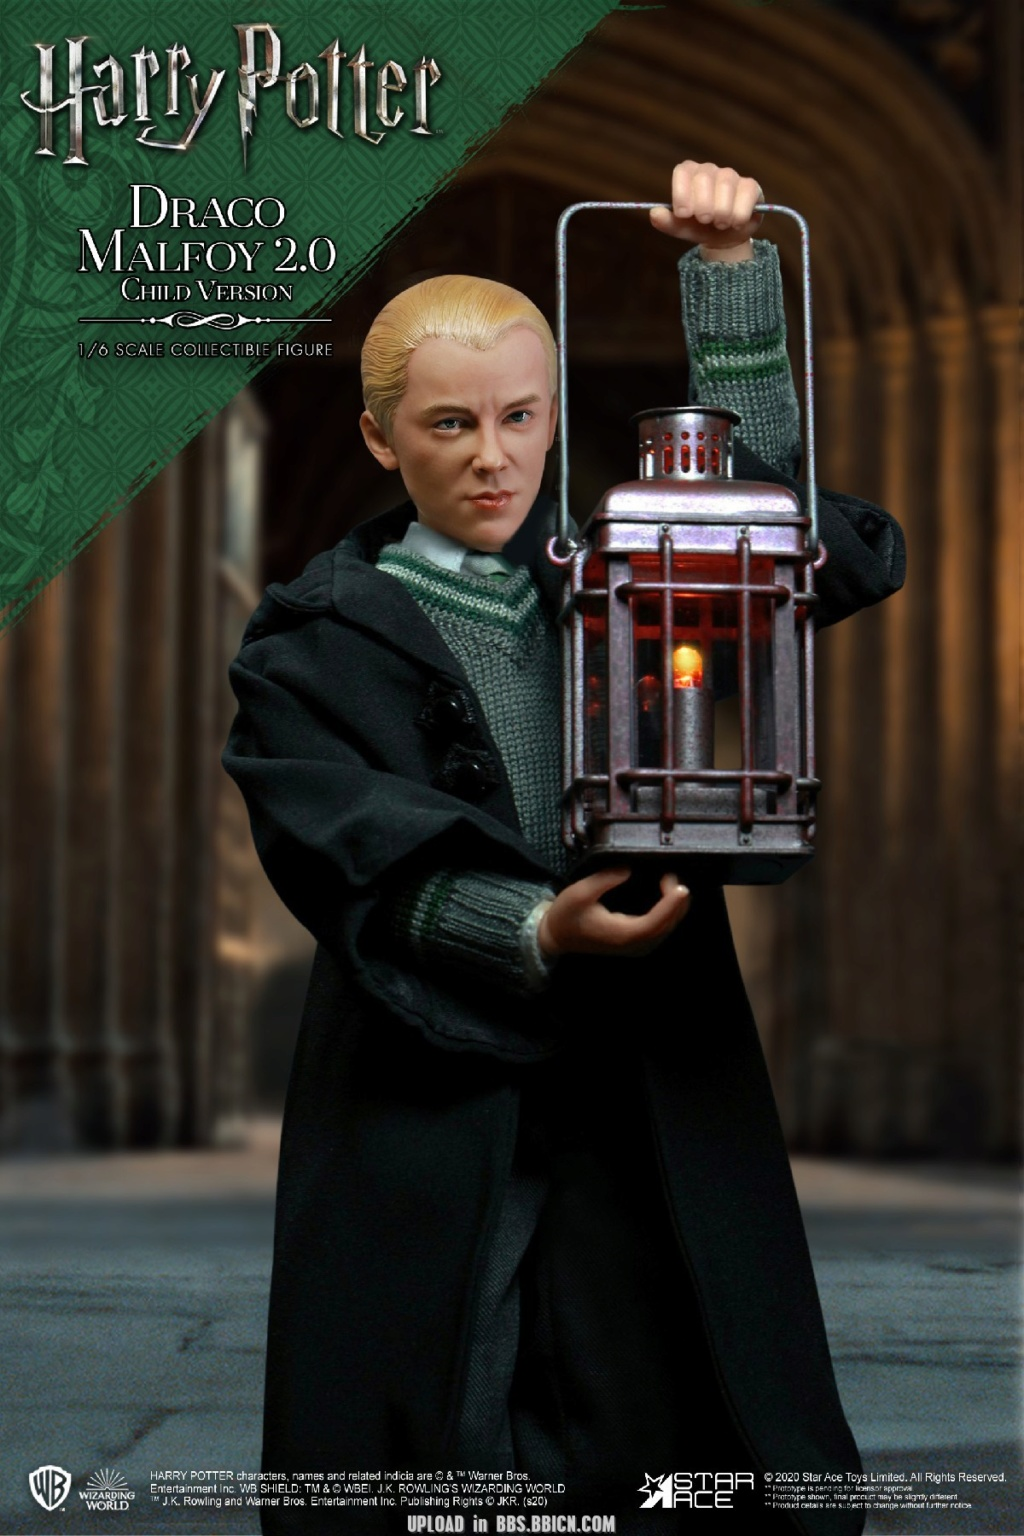 DracoMalfoy2 - NEW PRODUCT: STAR ACE Toys: 1/6 Harry Potter + Malfoy 2.0 Playing Set & Single & Uniform Edition 17082310